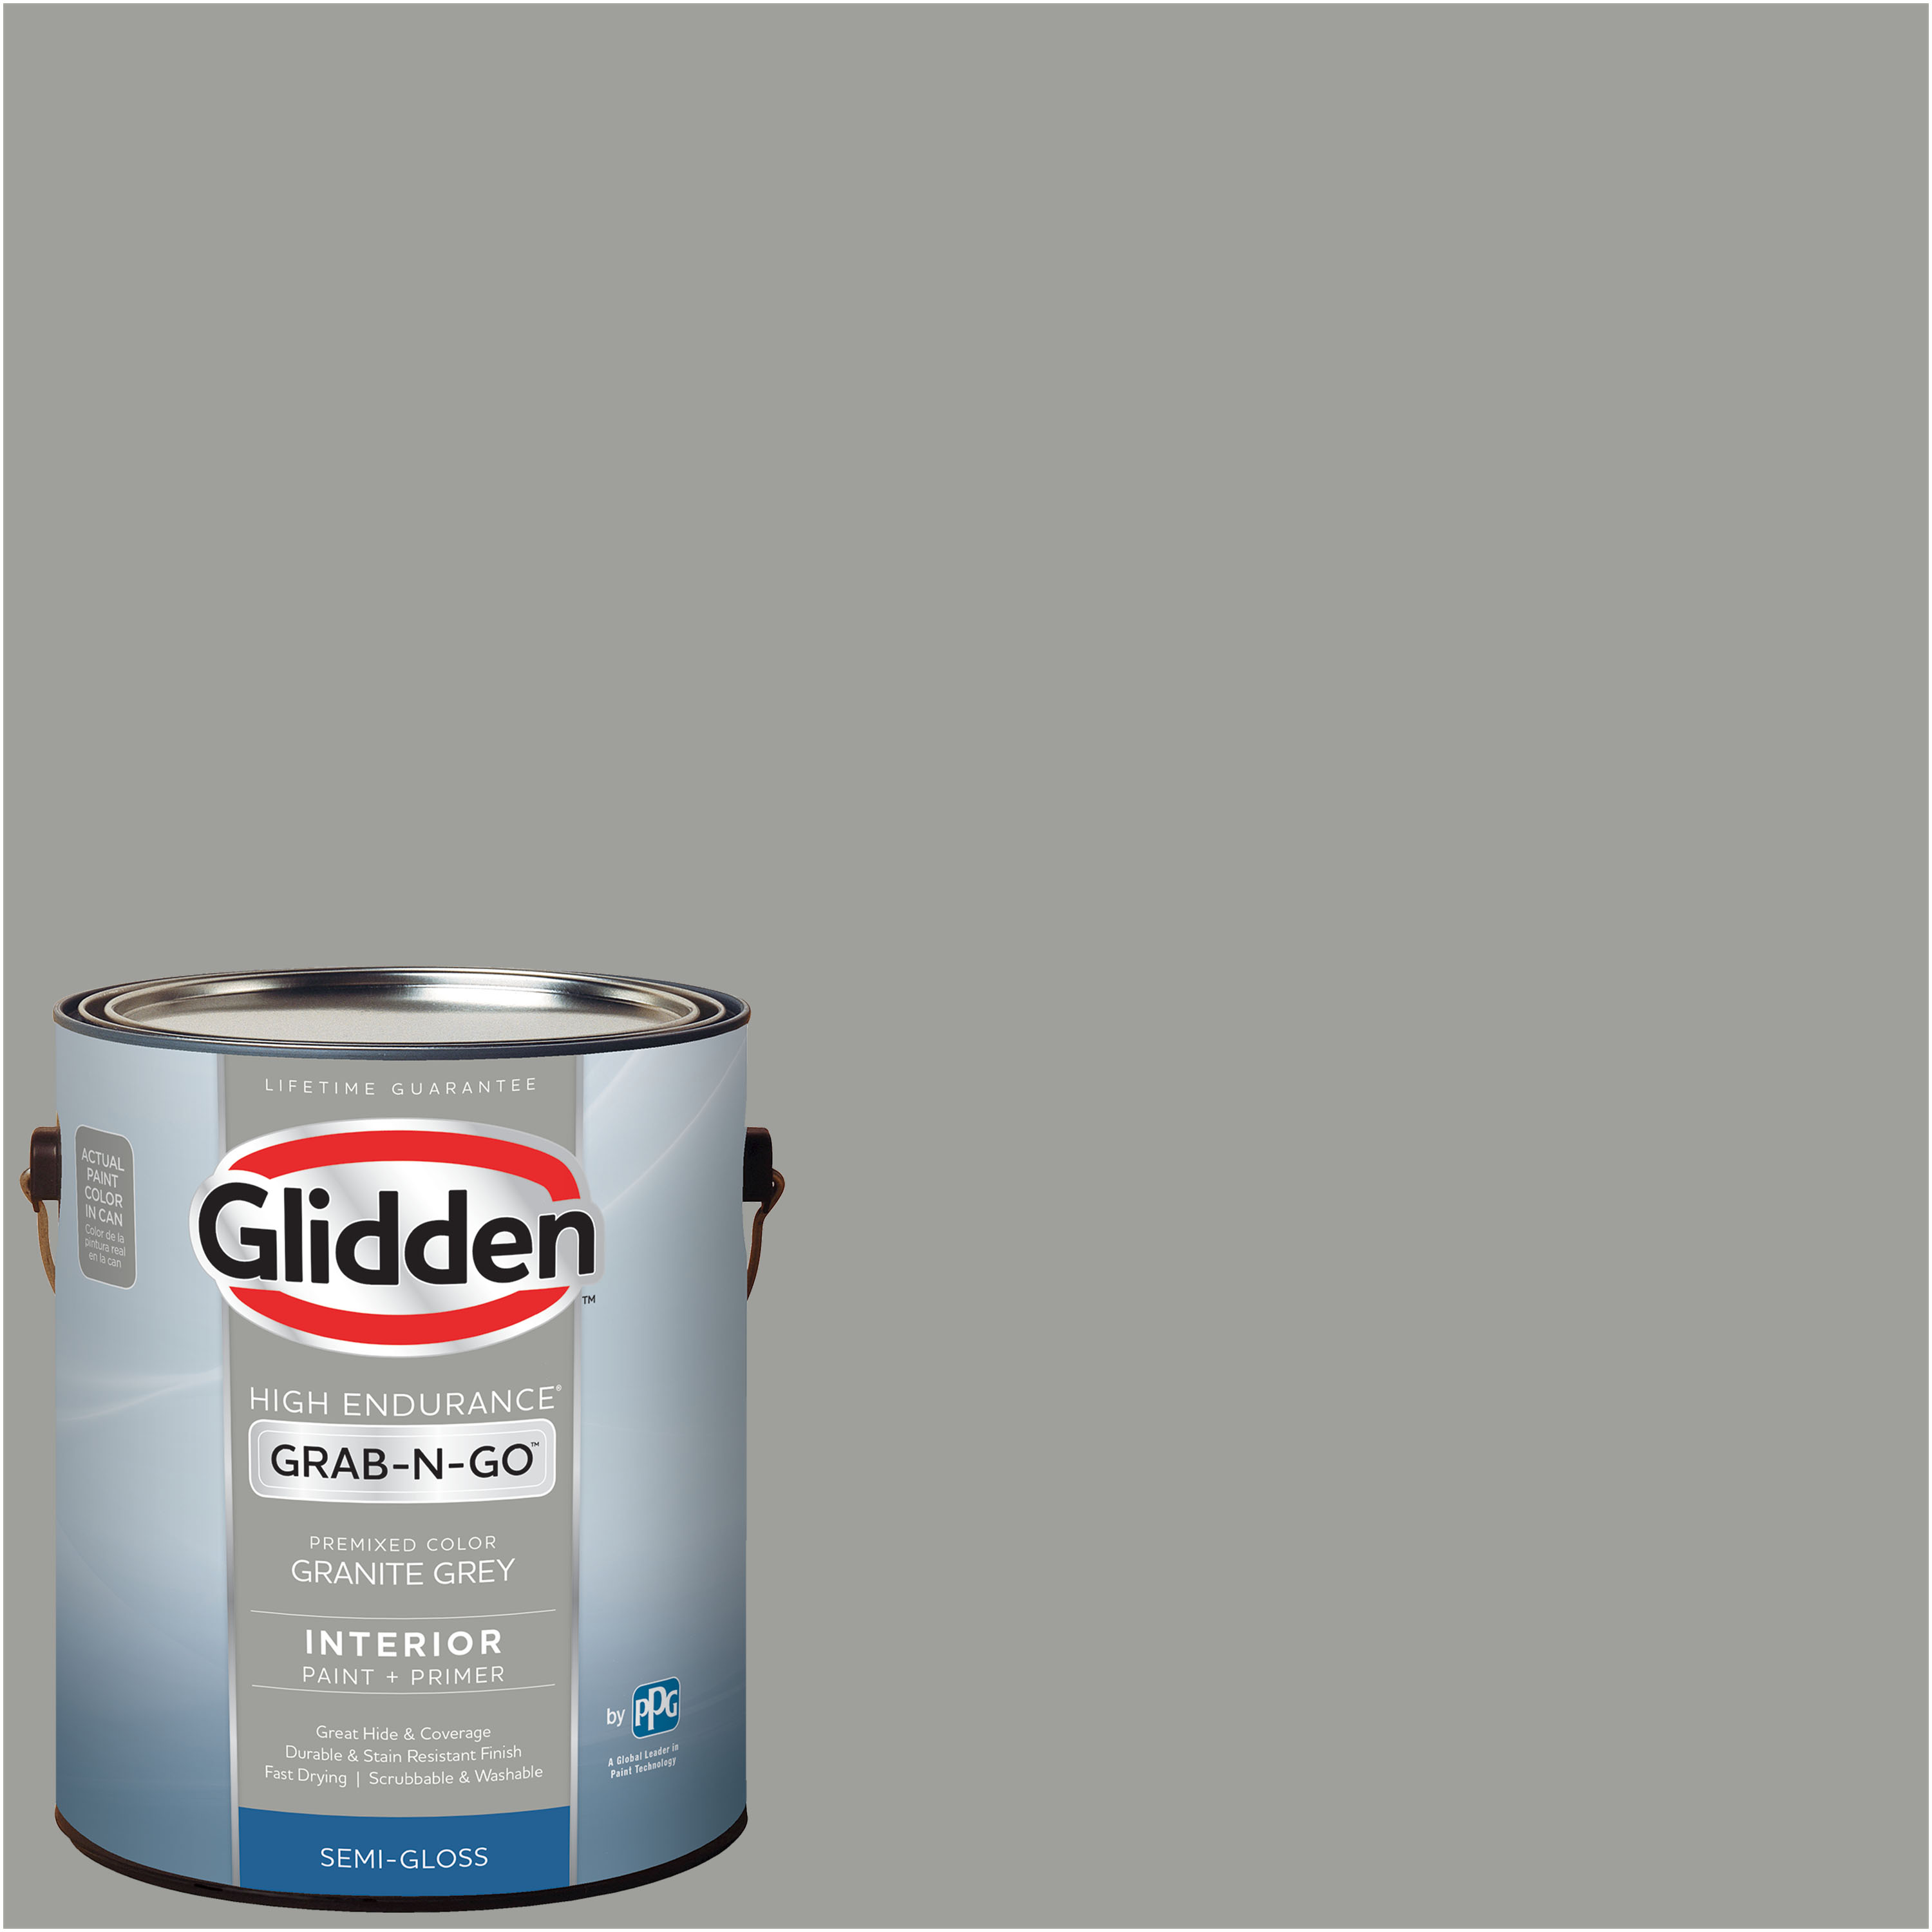 Glidden Pre Mixed Ready To Use, Interior Paint and Primer, Granite Grey, 1 Gallon